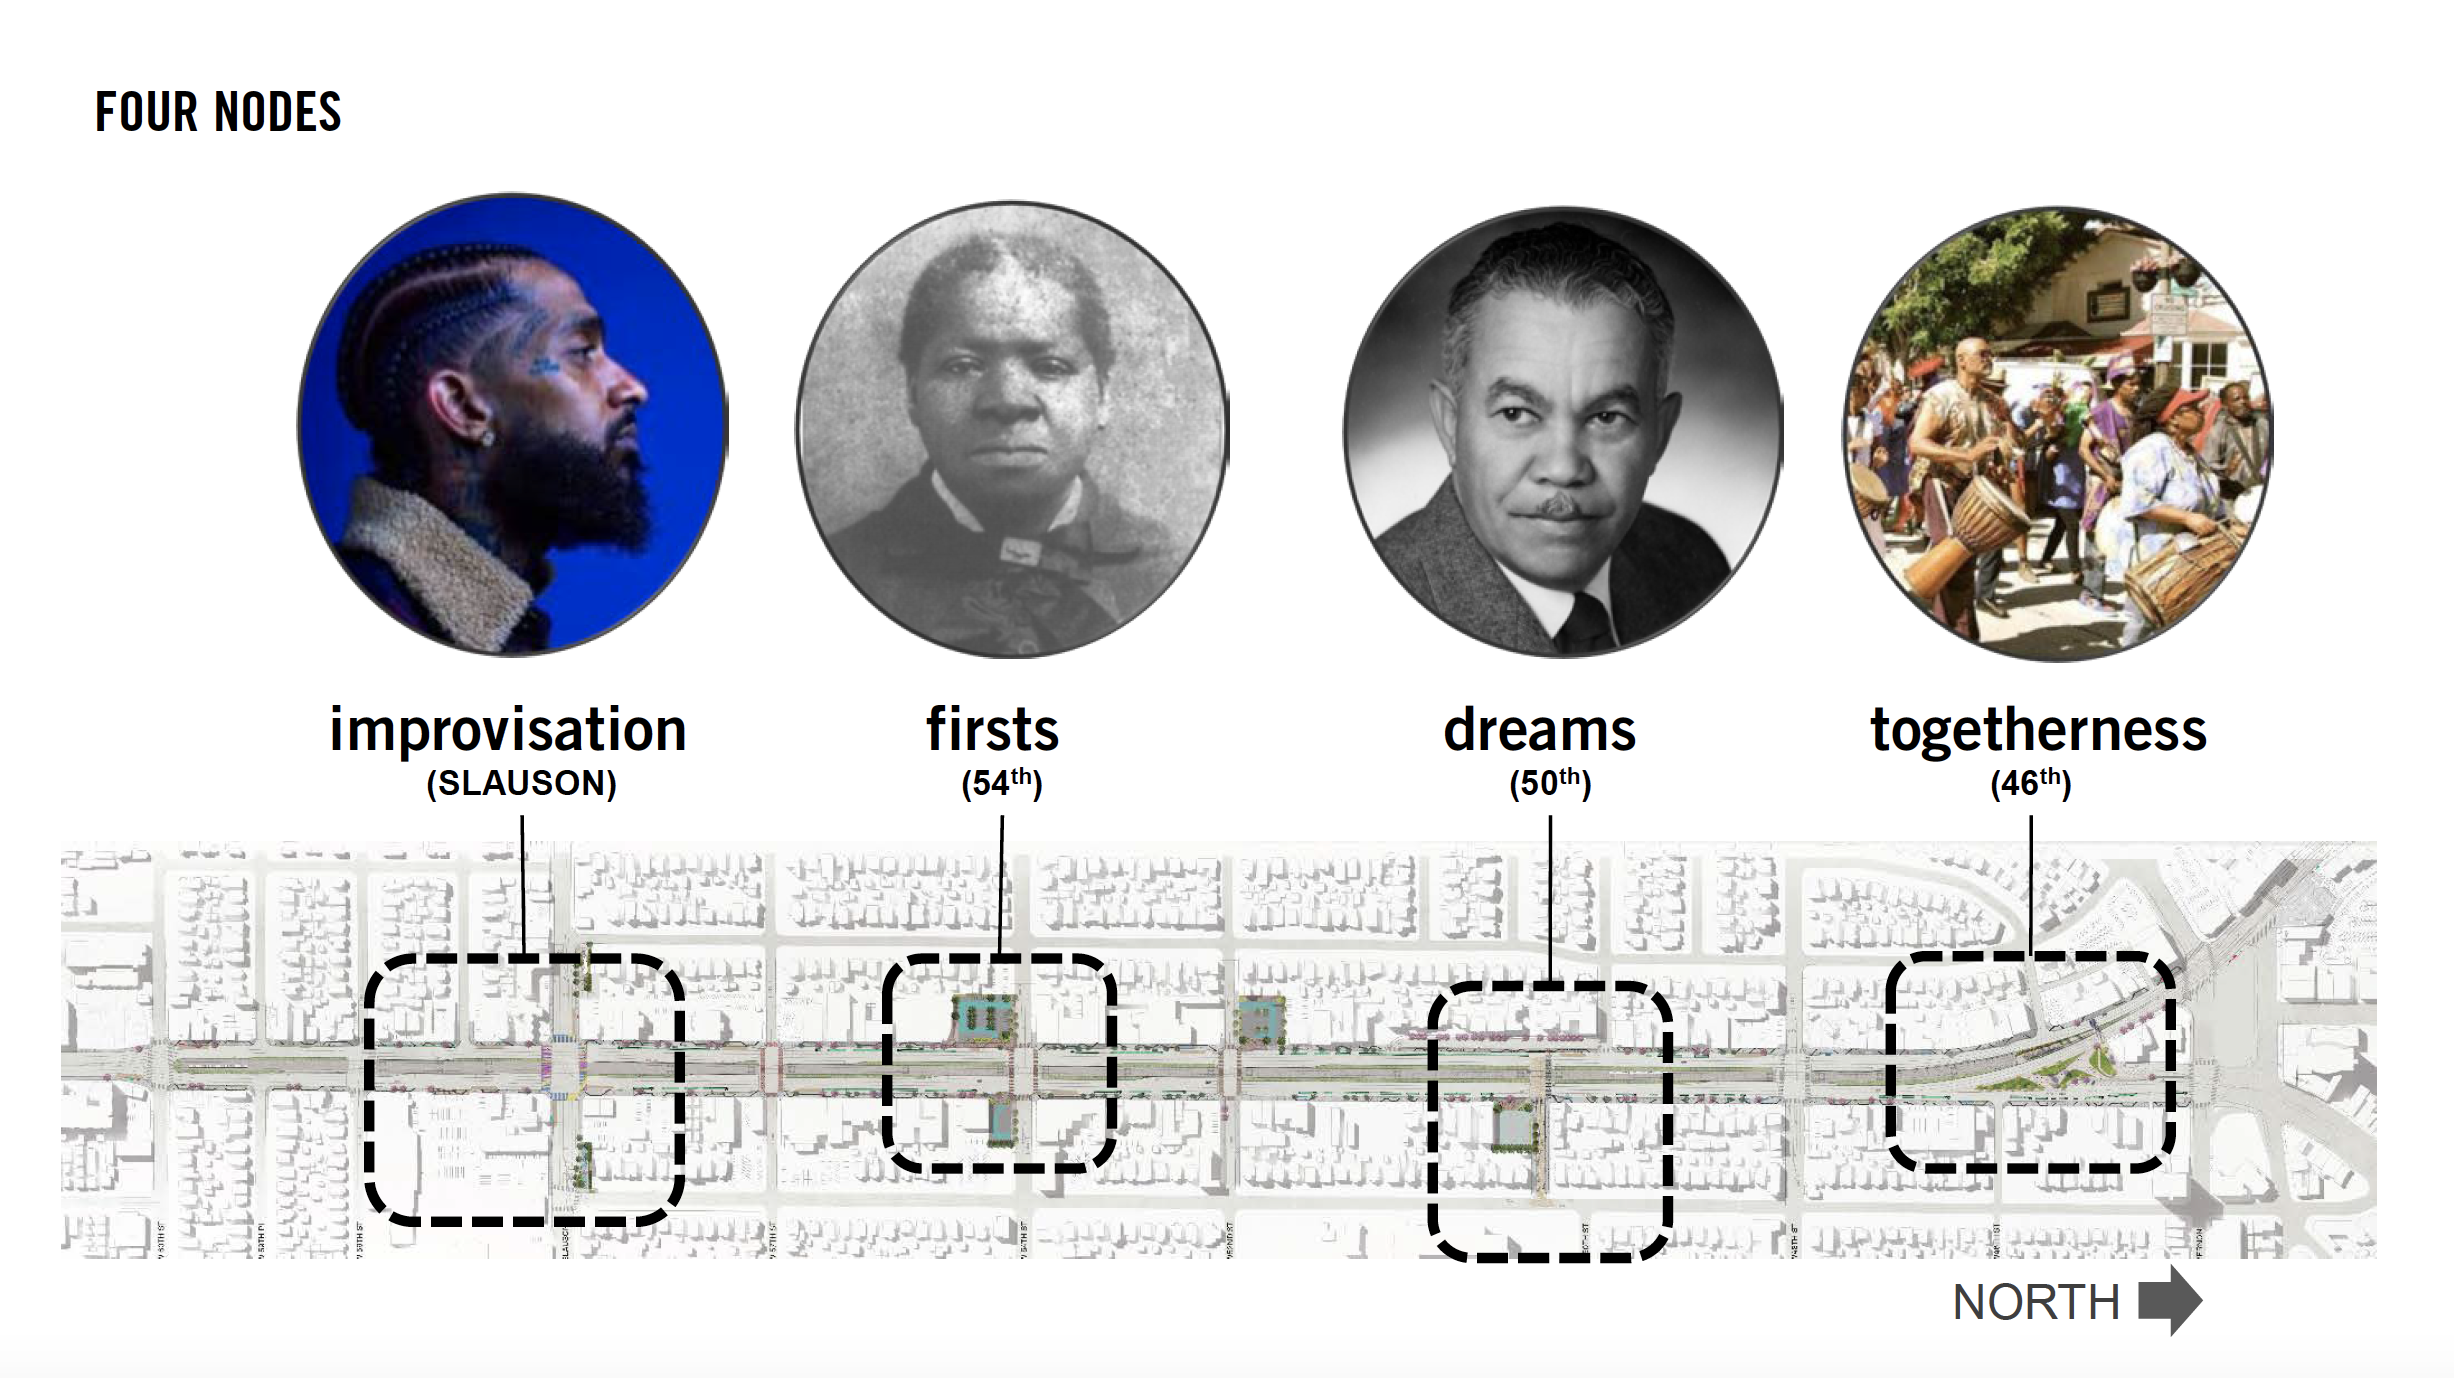 The nodes anchoring the themes of Destination Crenshaw take inspiration from the stories of Nipsey Hussle, Biddy Mason, architect Paul Revere Williams, and the unifying of the diaspora. Image courtesy of Destination Crenshaw